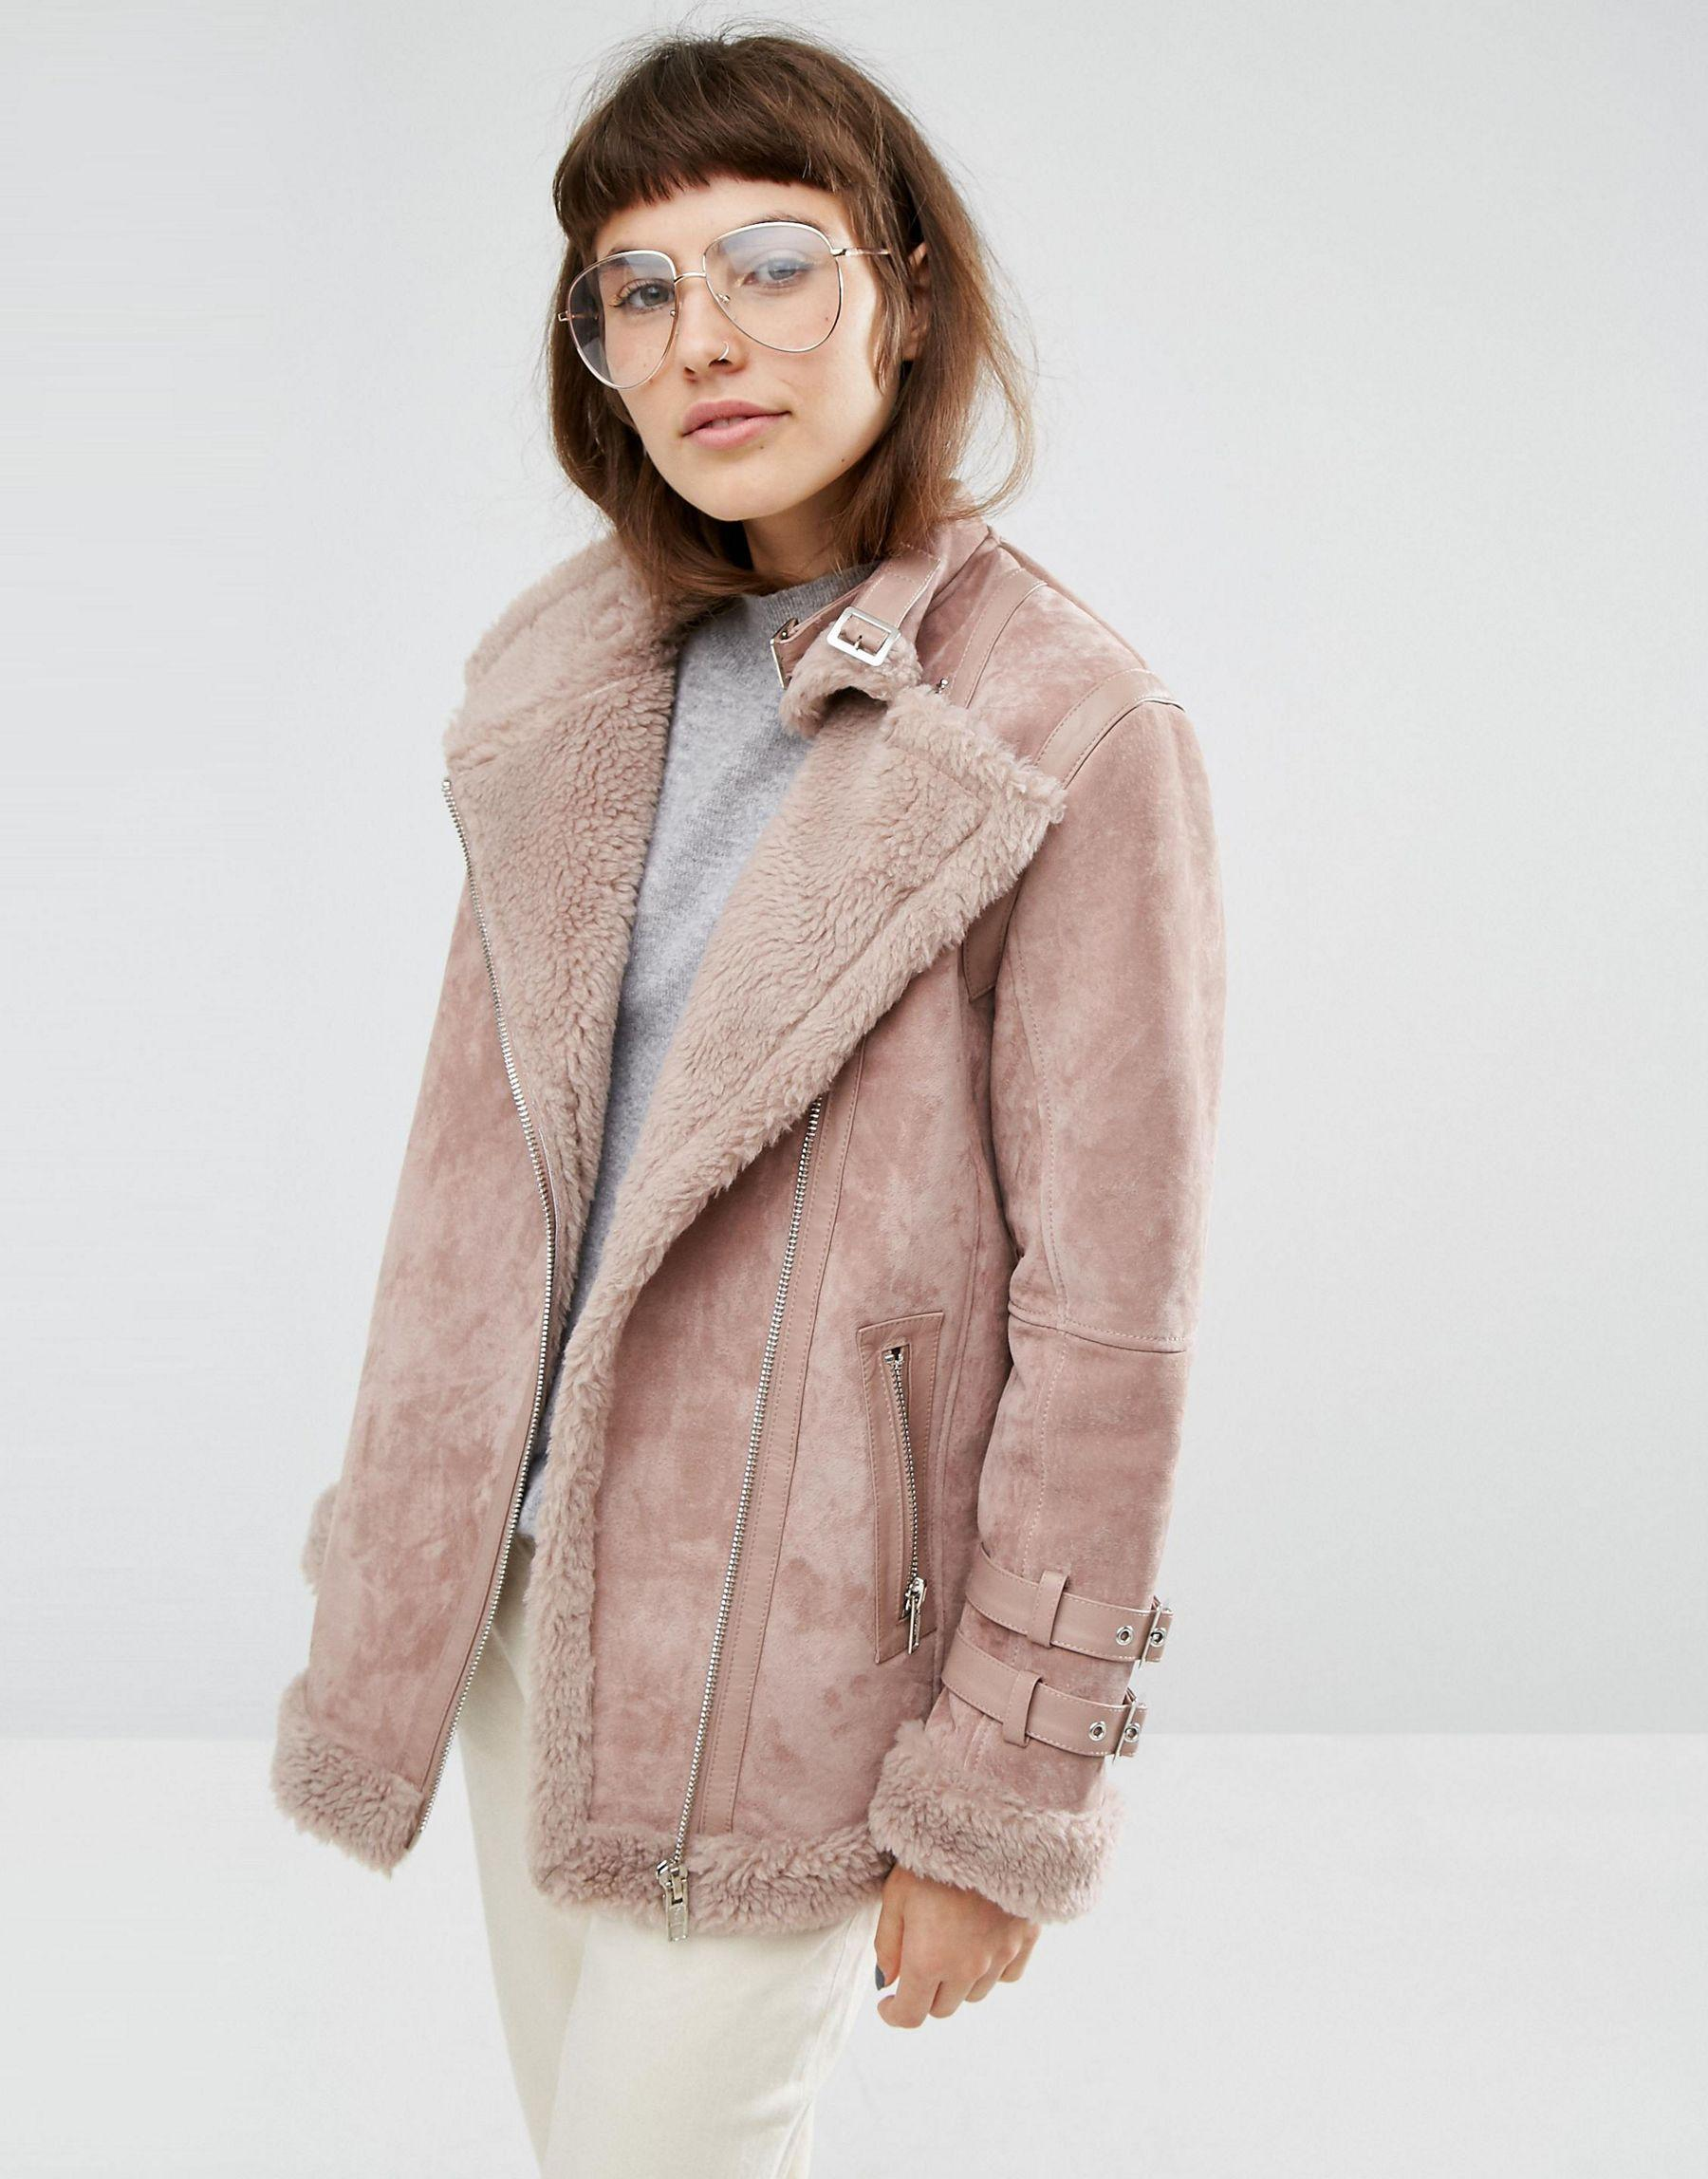 Lyst - Asos Suede Aviator Jacket With Faux Shearling